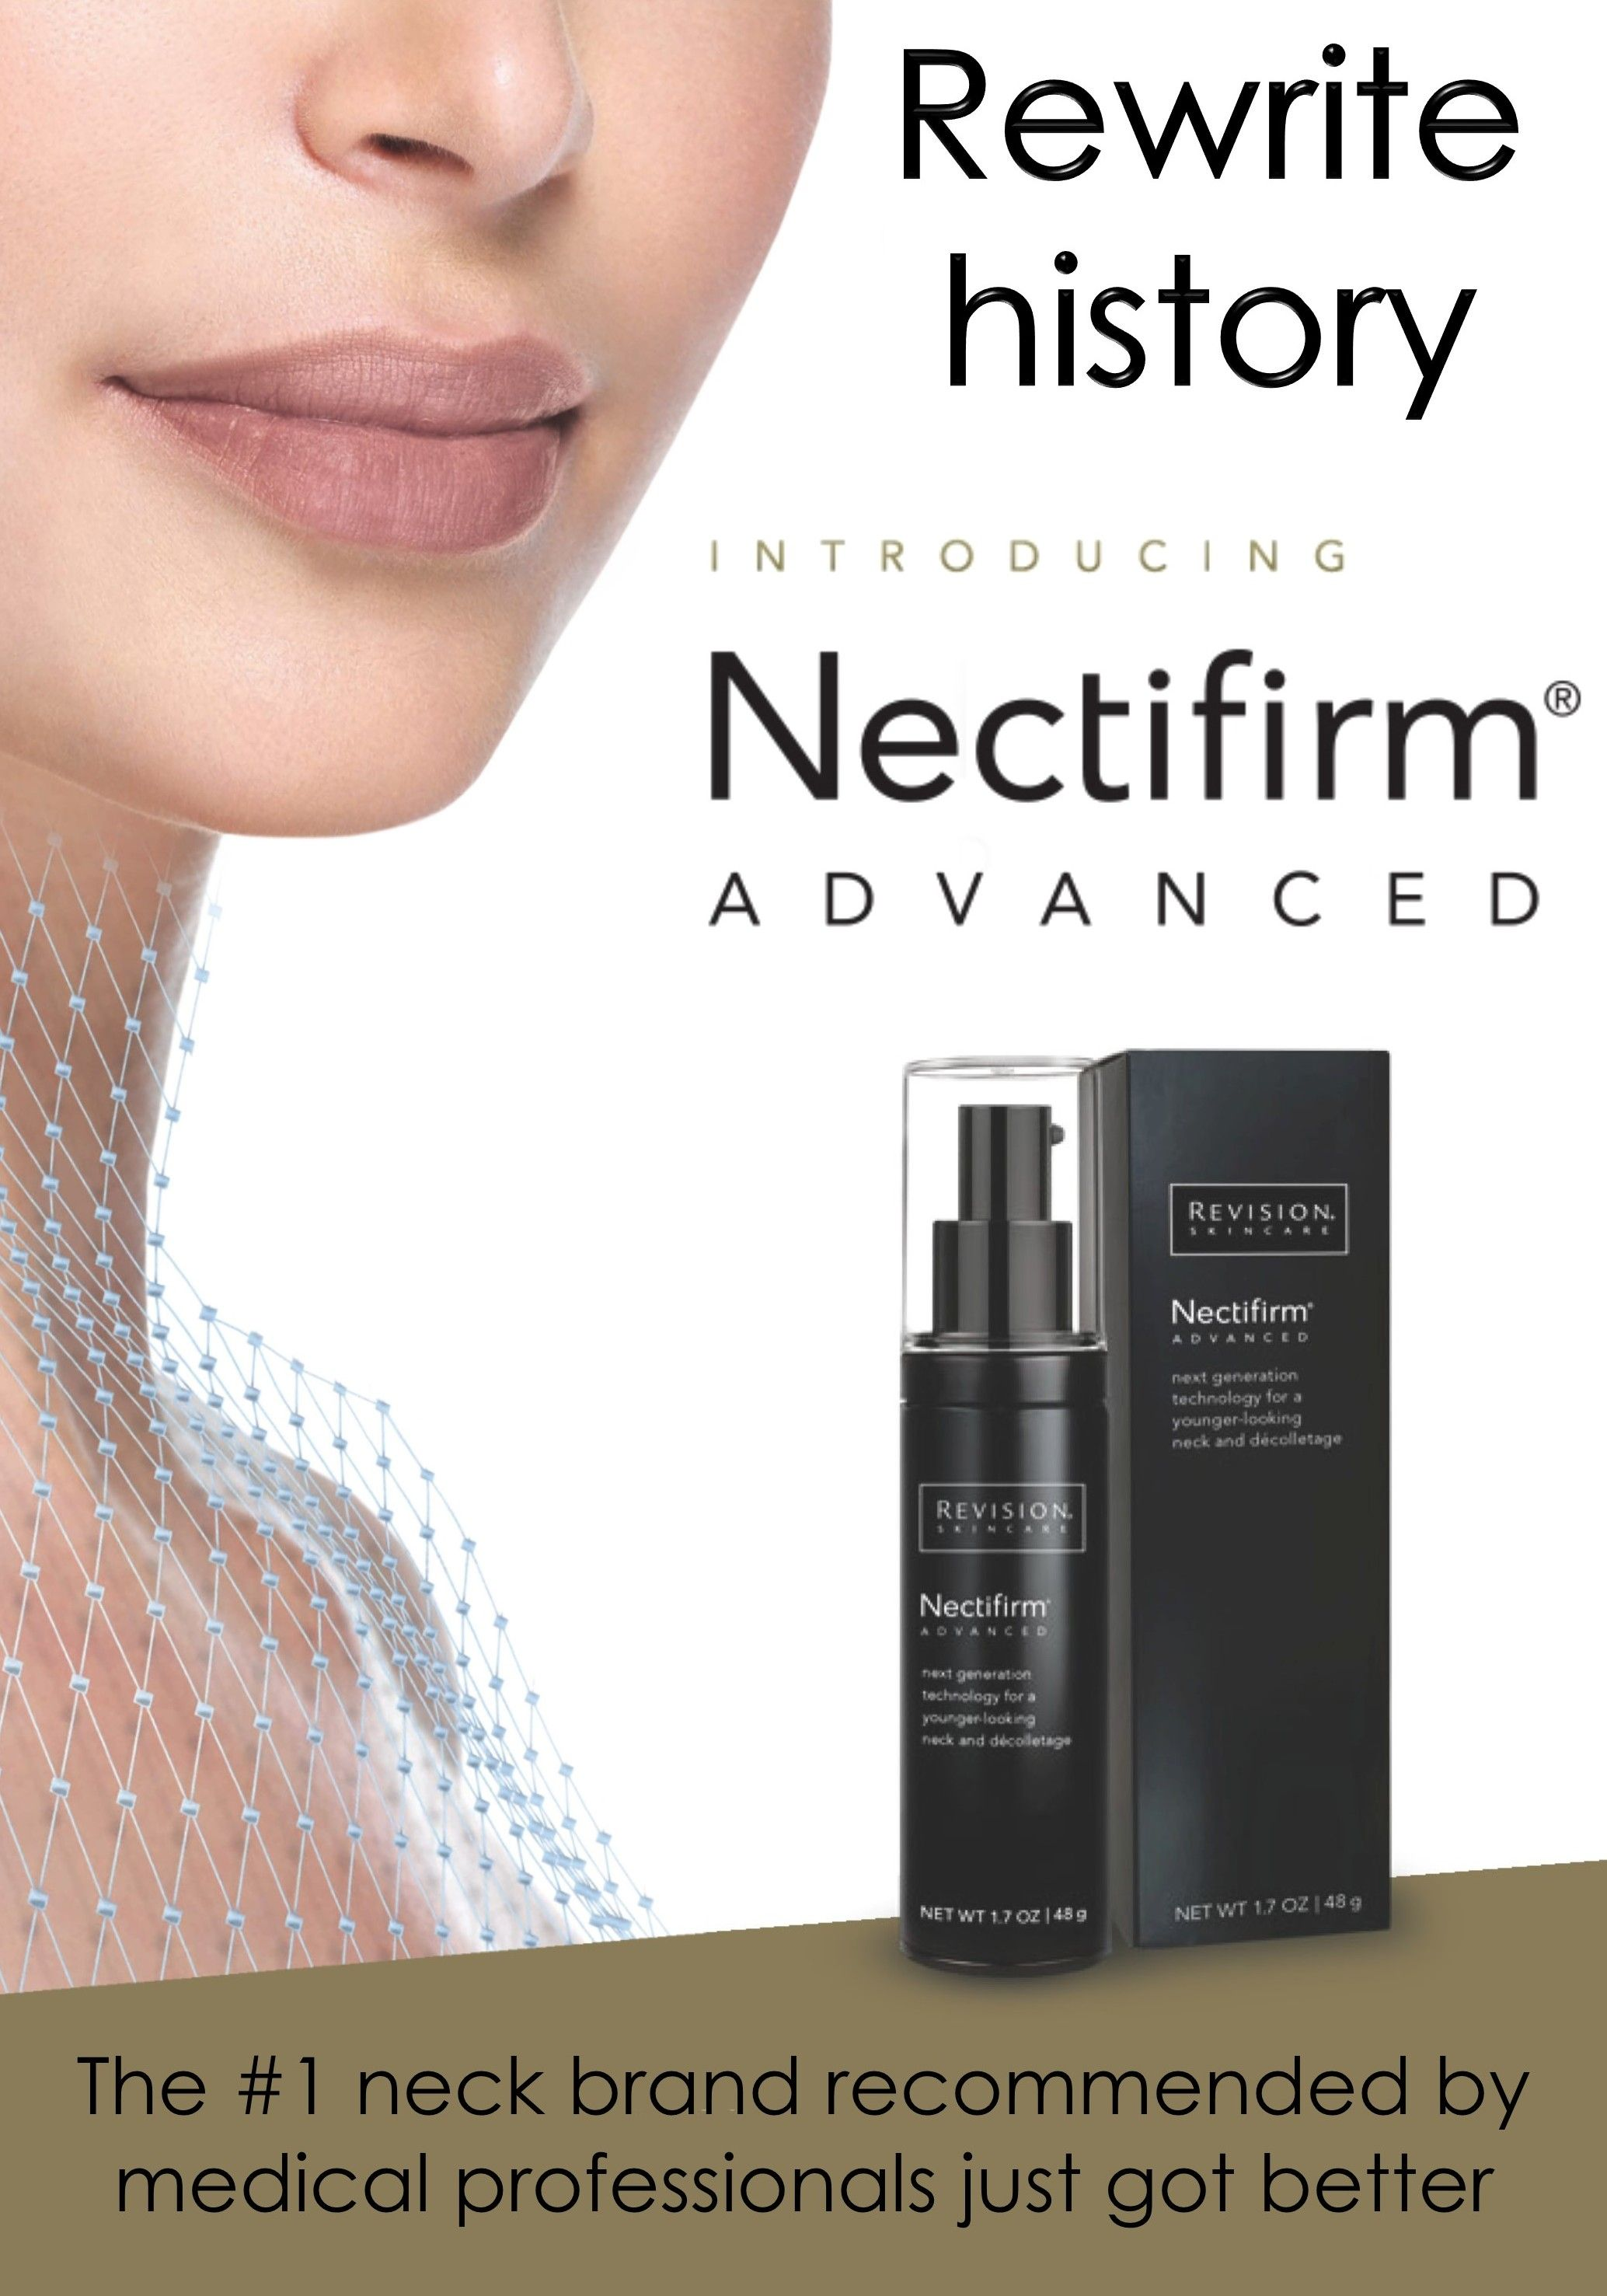 Limited Time Introductory Offer Rewrite History With New Nectifirm Advanced